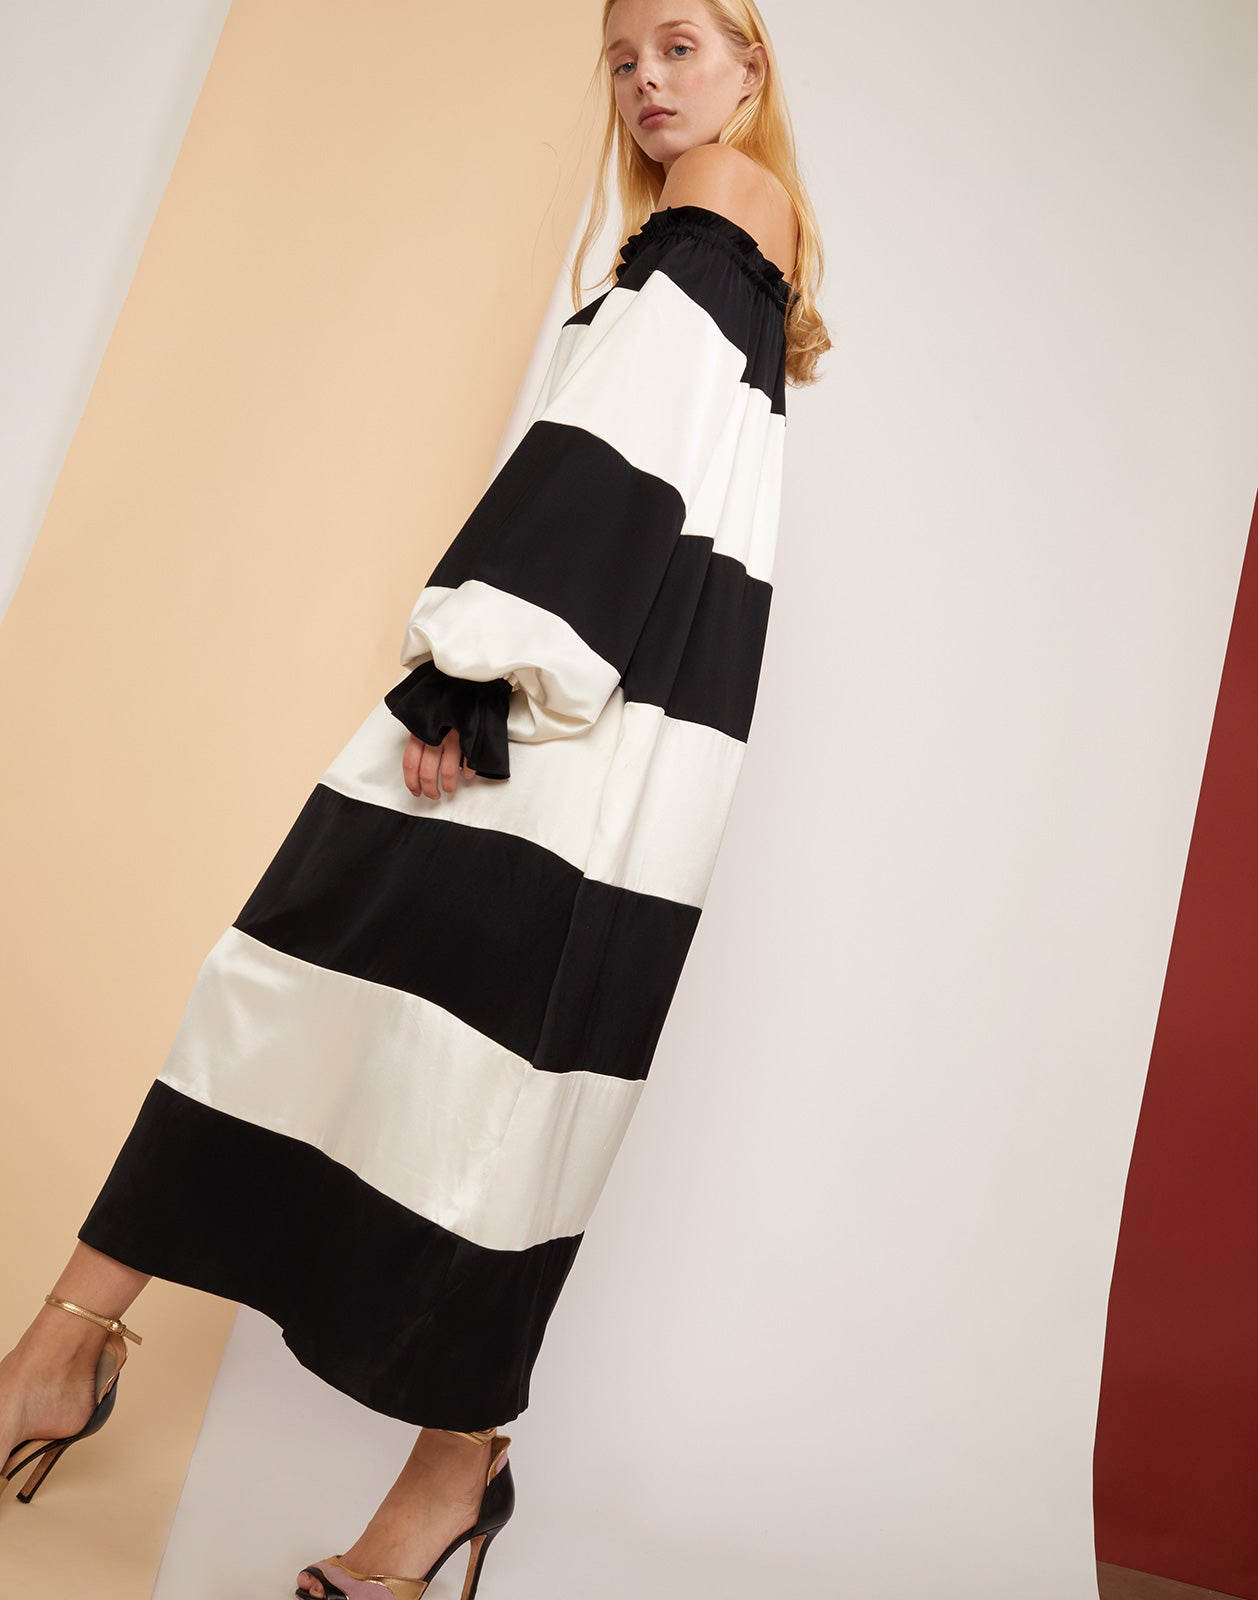 Side view of the Shanley off shoulder black and white striped dress.